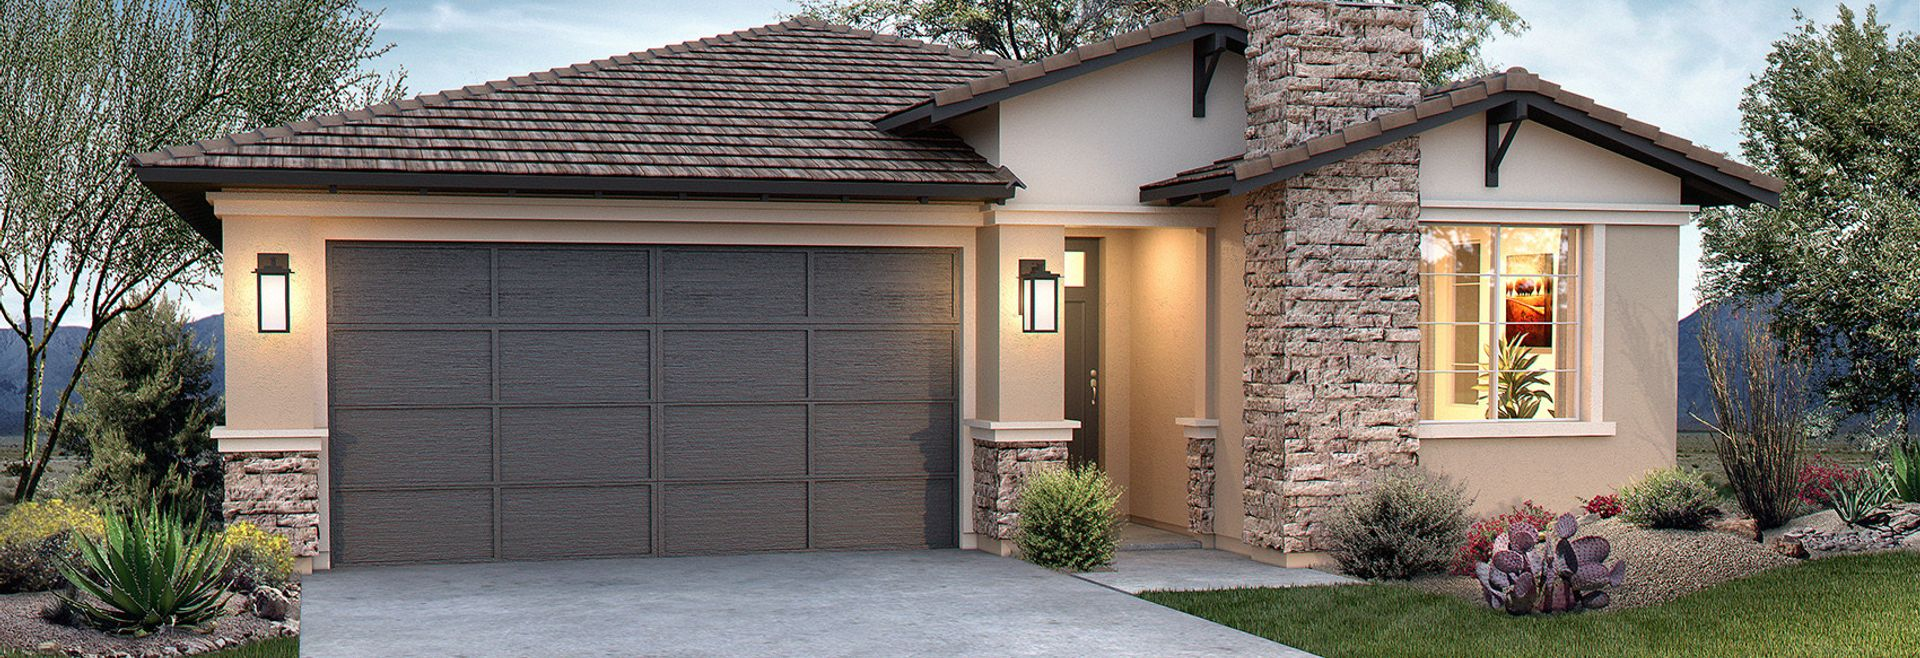 Ambition at Eastmark by Shea Homes in Mesa, Arizona